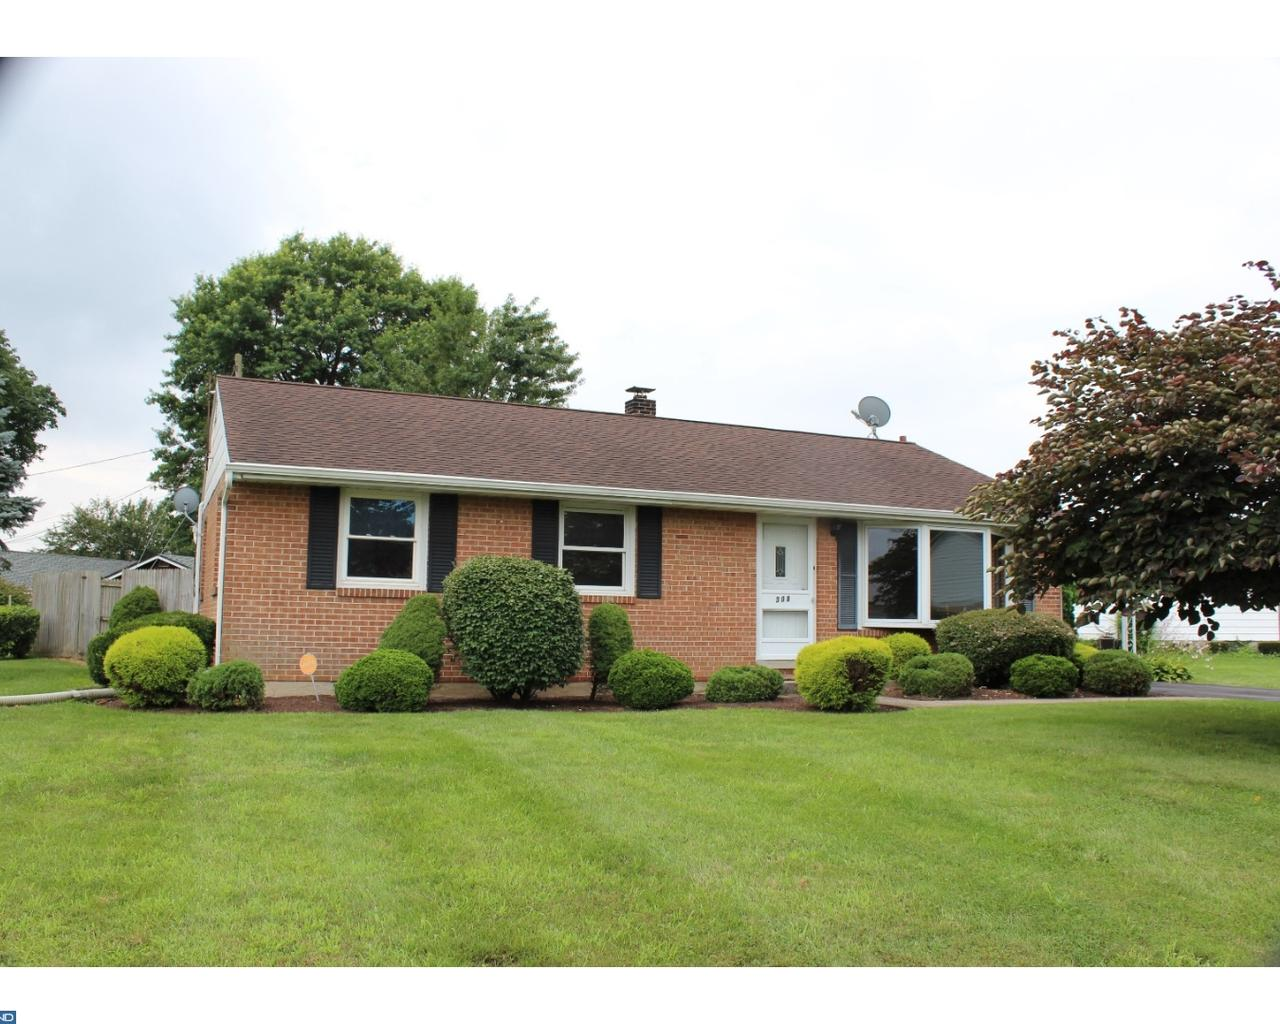 Property for sale at 308 REESER ST, Leesport,  PA 19533